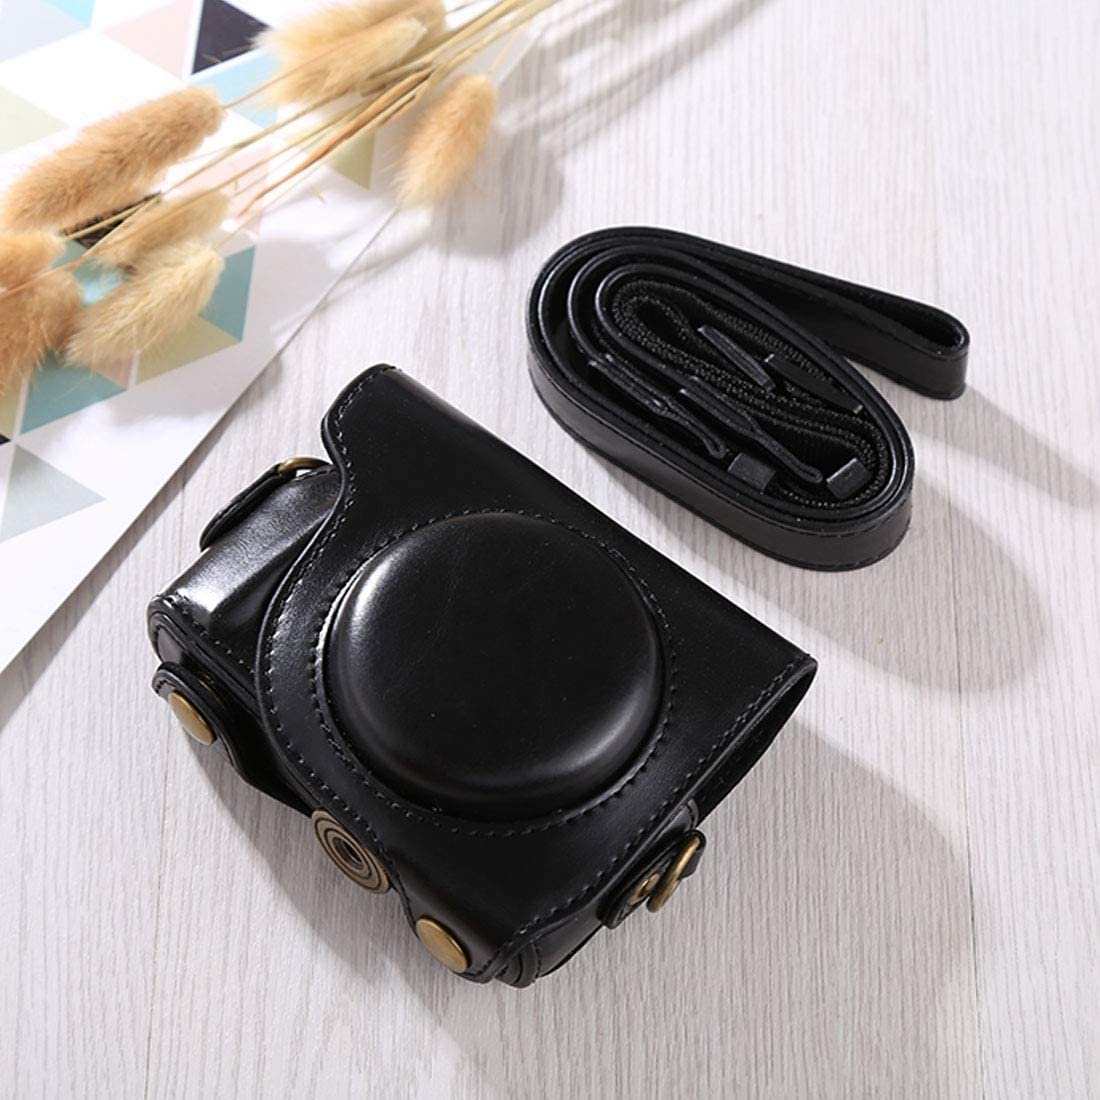 Color : Black Perfect Home Convenience Durable Full Body Camera PU Leather Case Bag with Strap for Canon G9X G9X II Durable